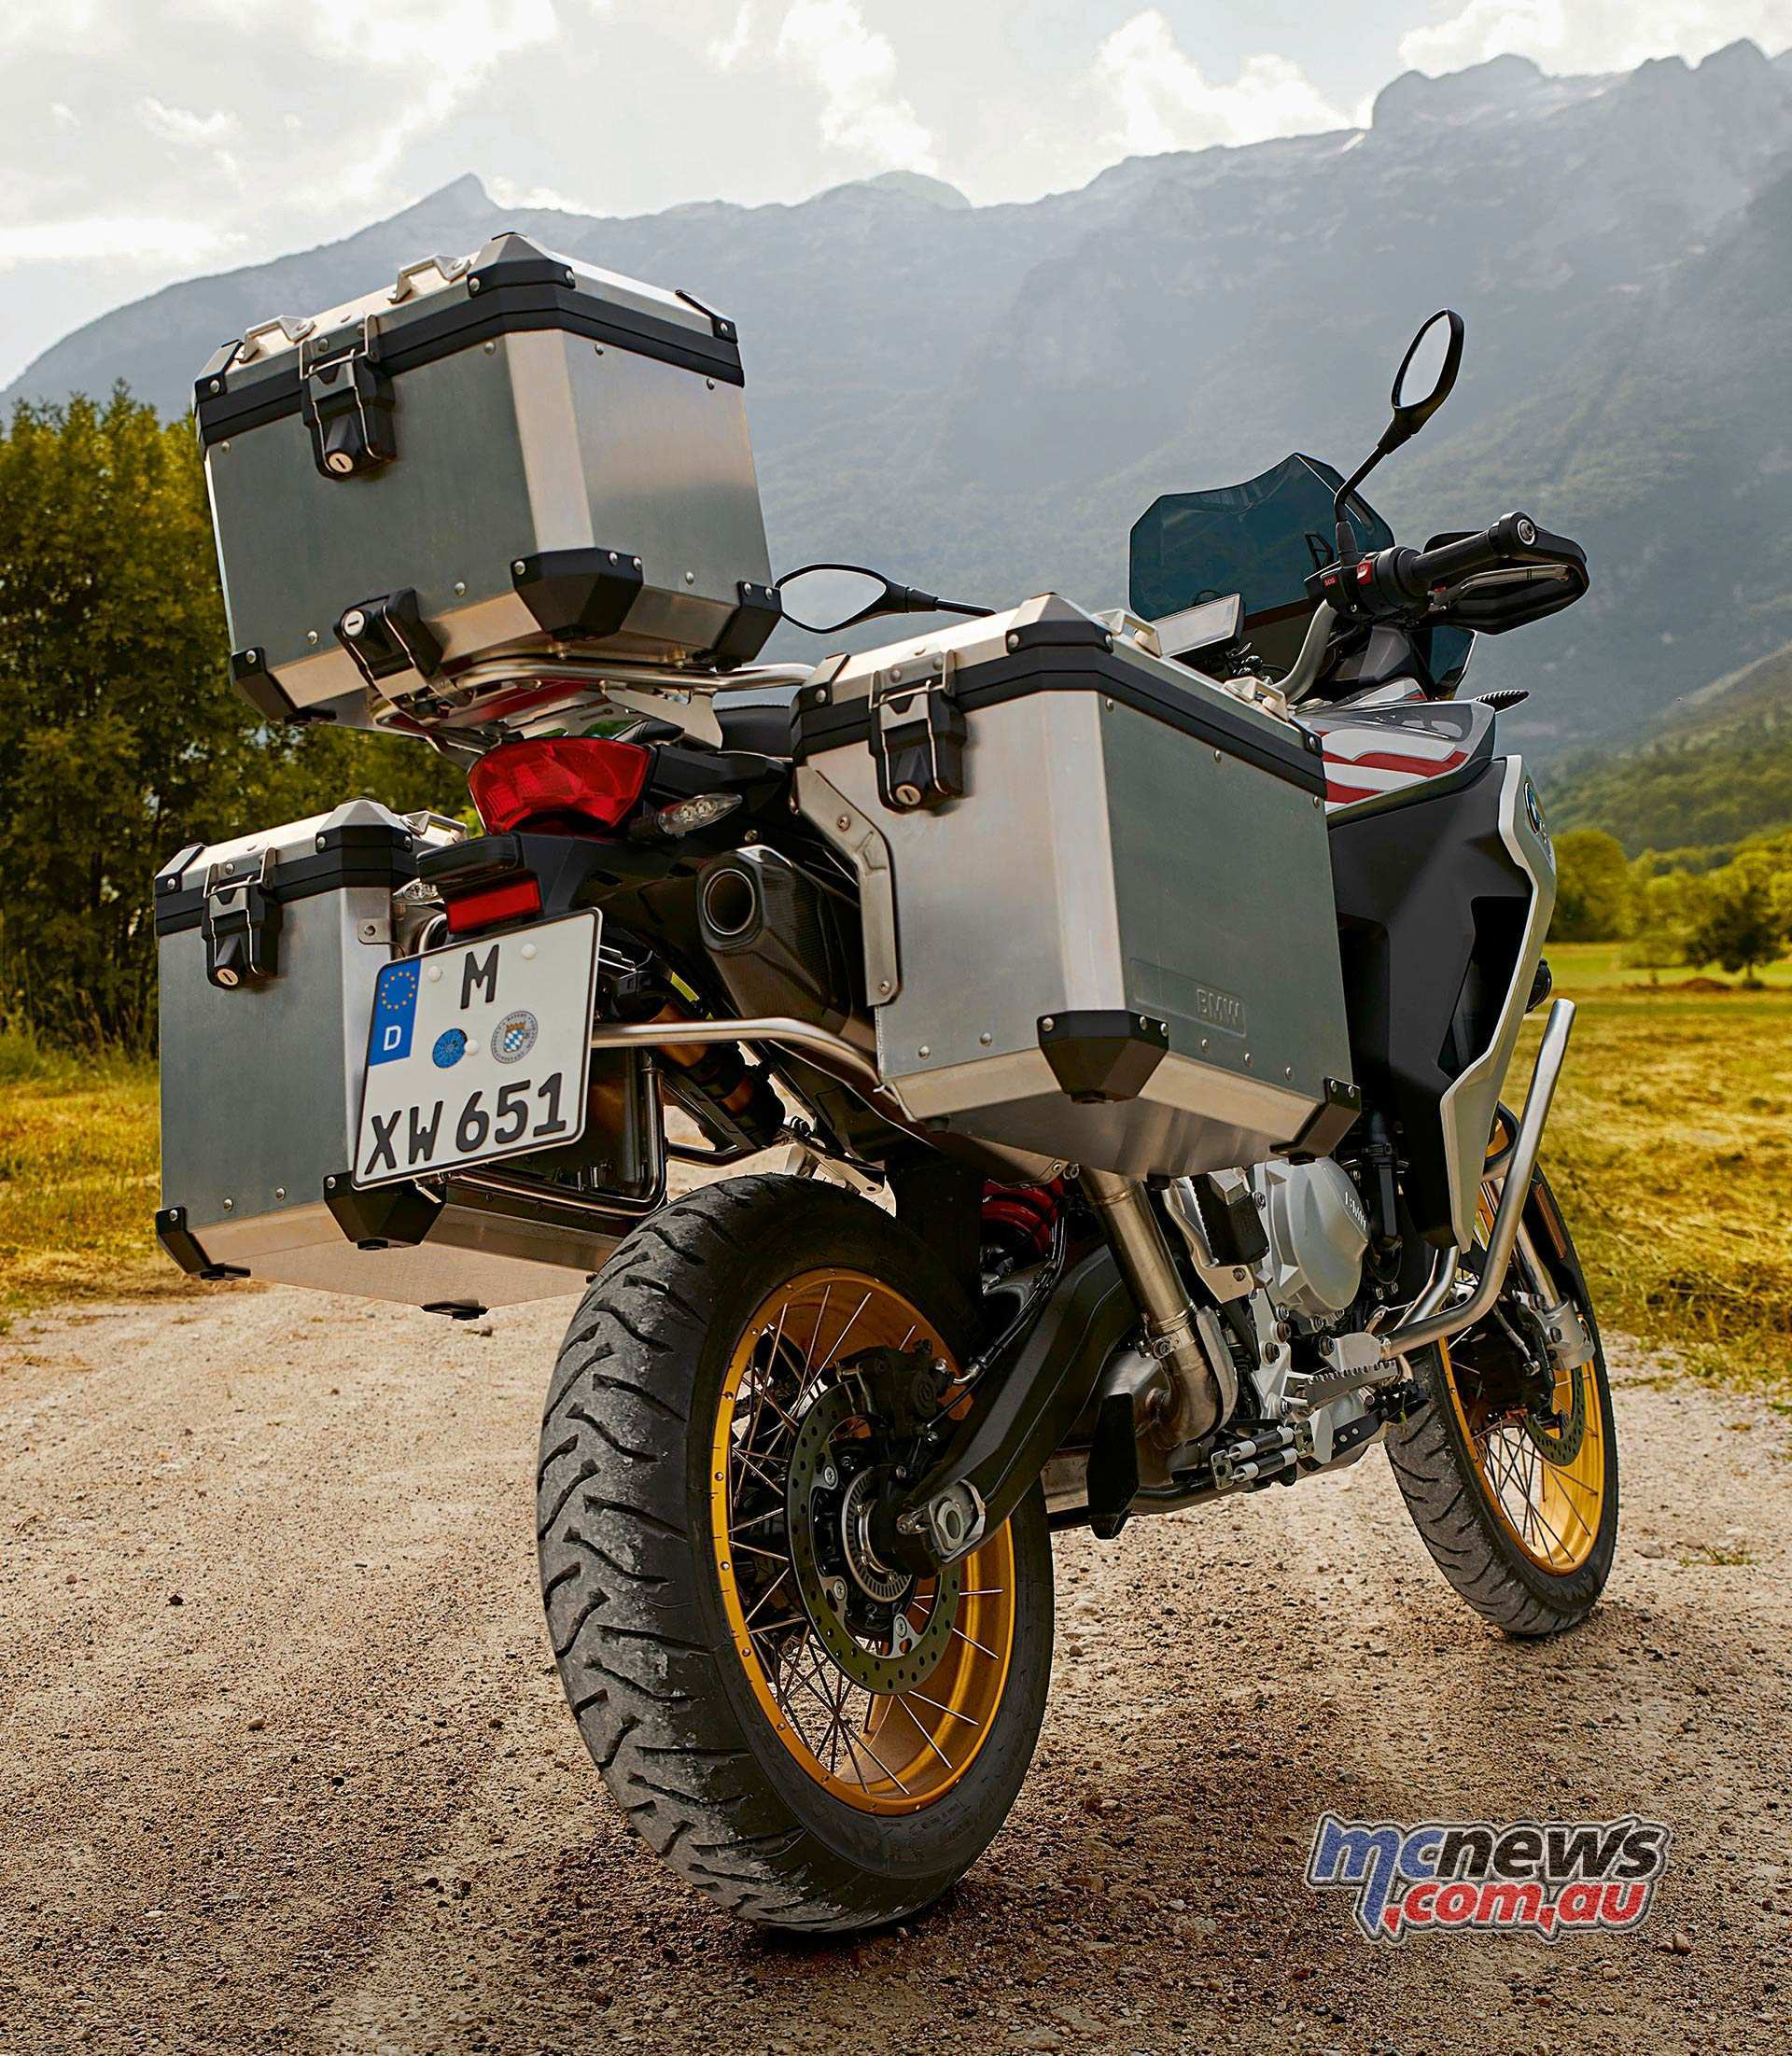 62 Best Review Bmw F850Gs Adventure 2019 Engine Images for Bmw F850Gs Adventure 2019 Engine